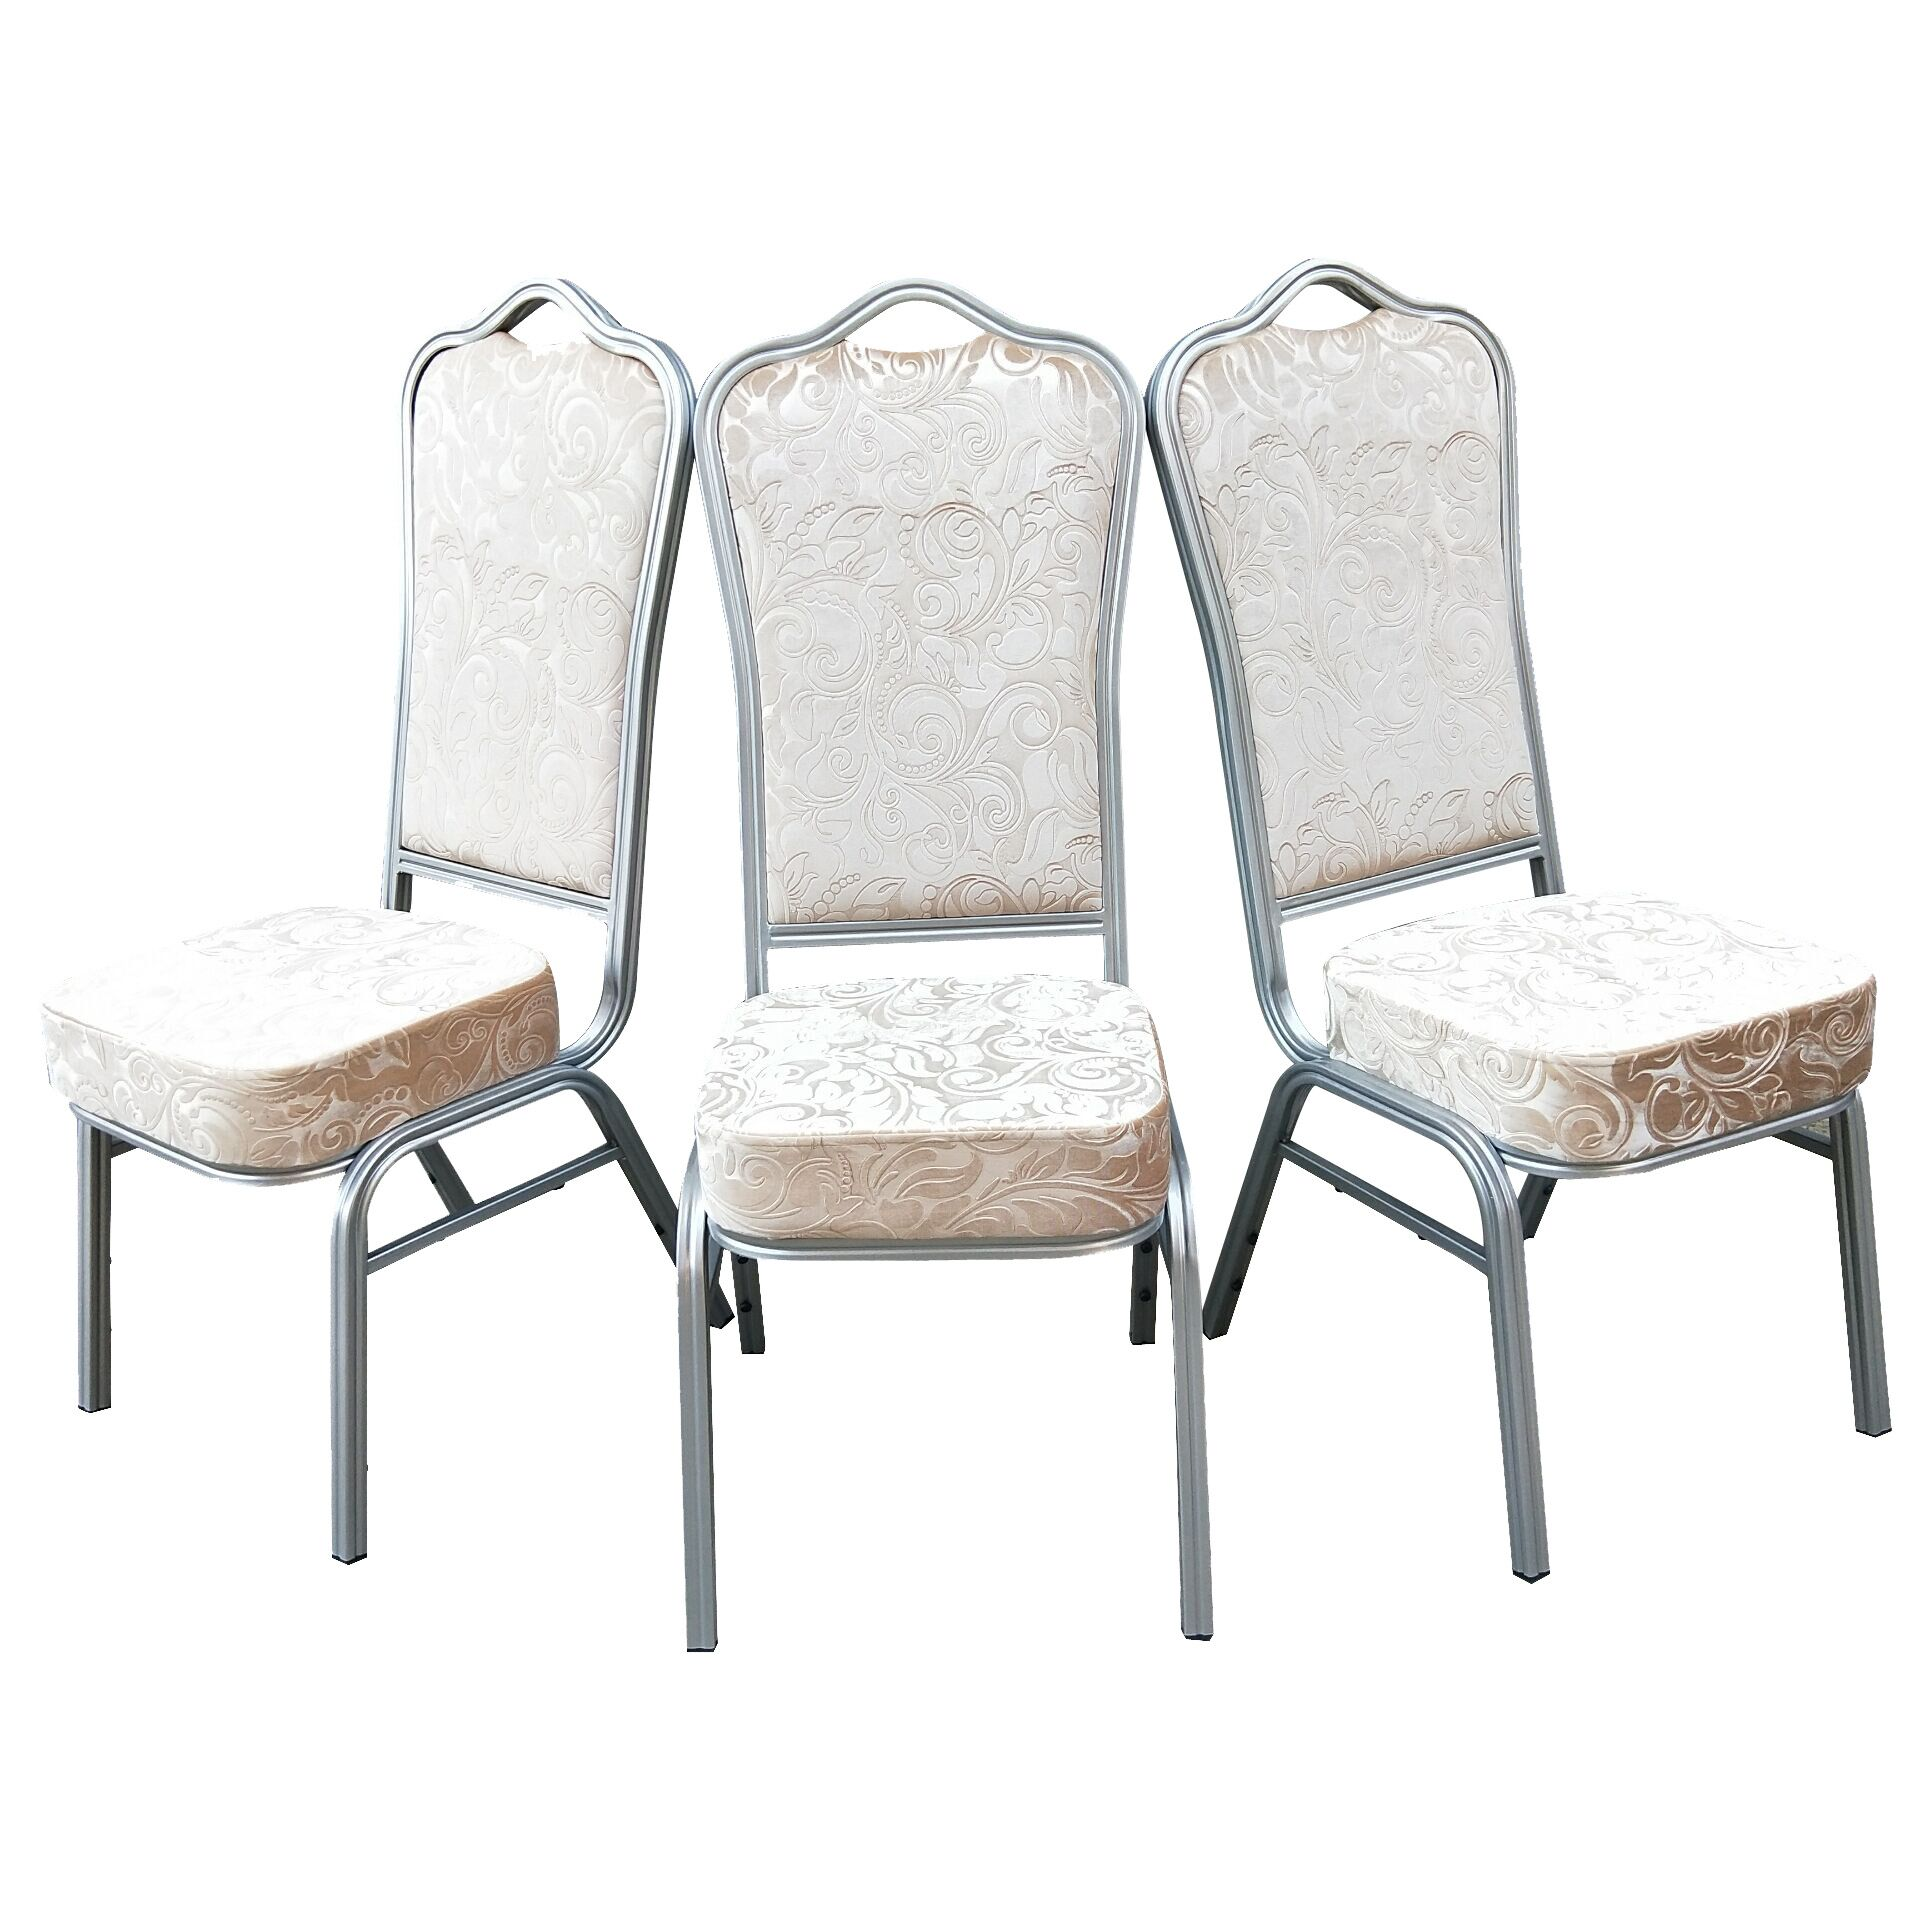 Well-designed New Design Church Furniture Chair In 2015 -